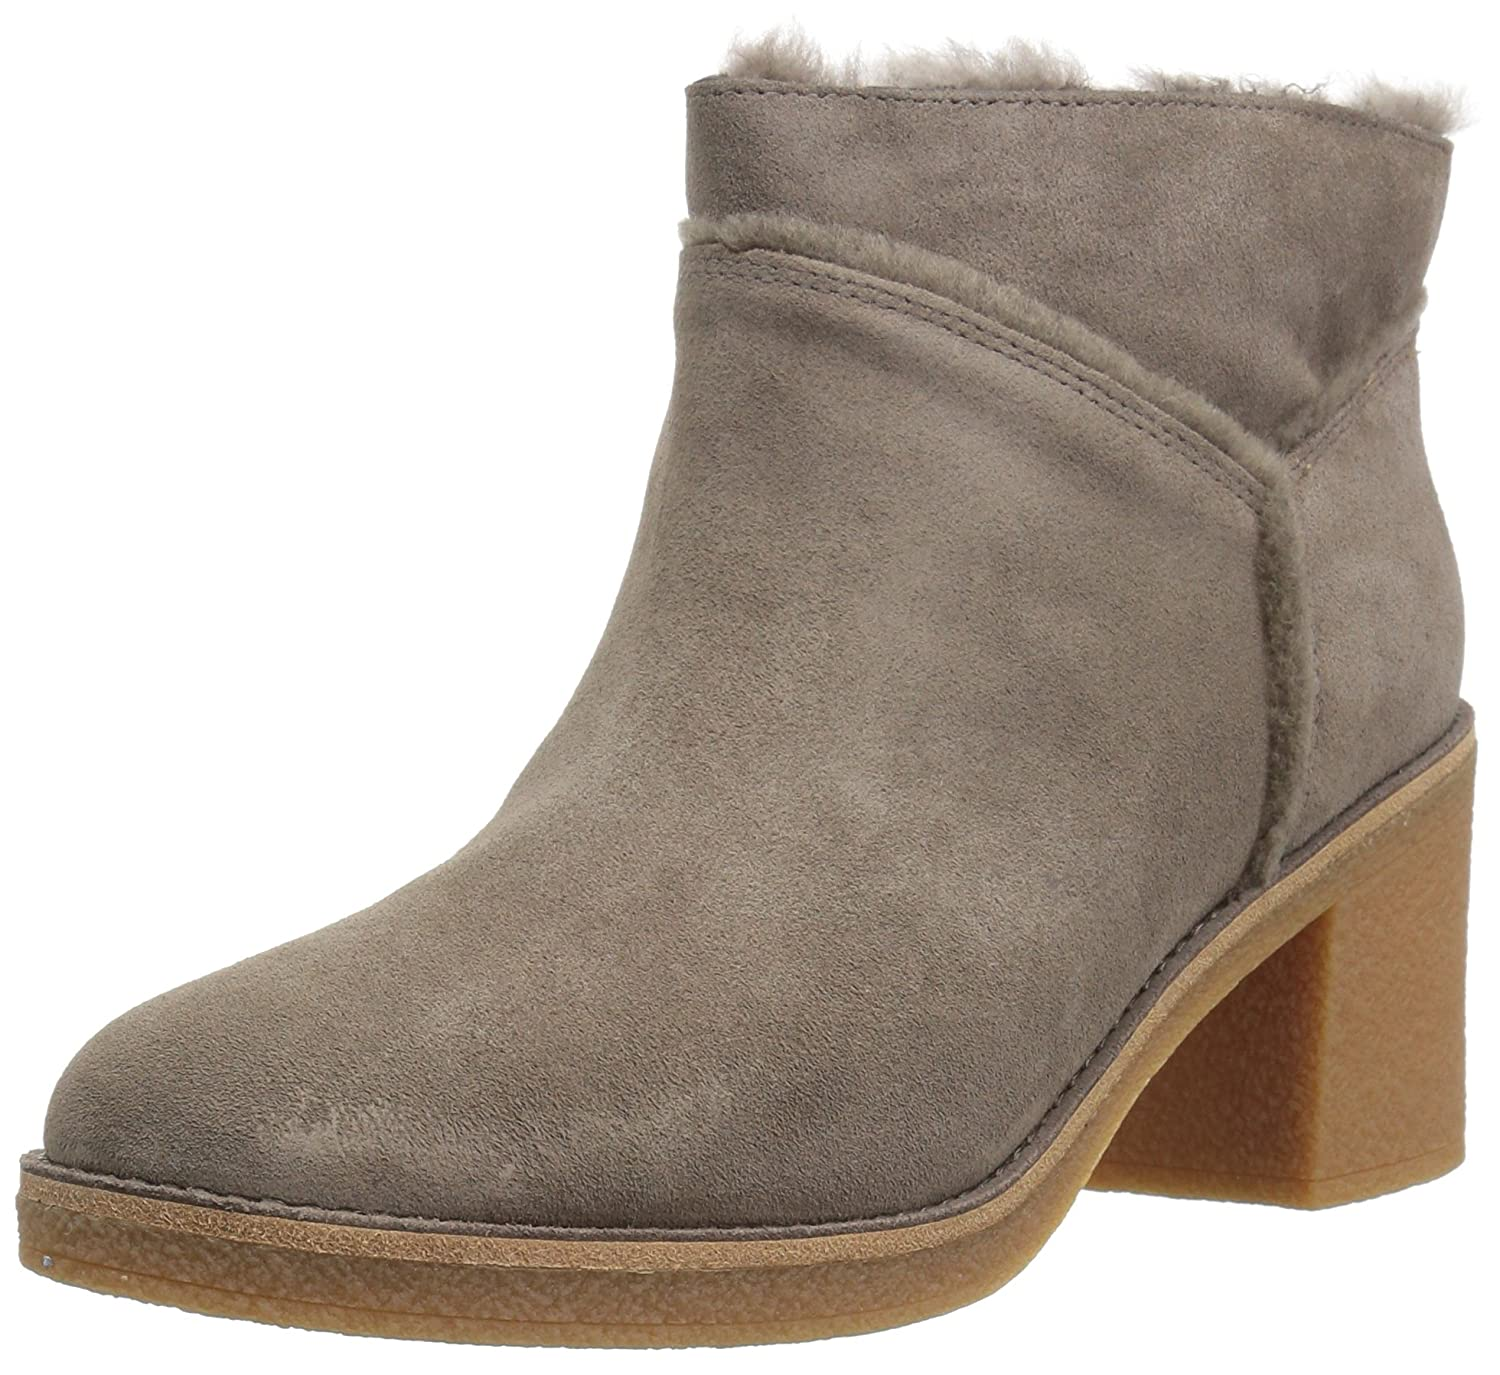 Ugg Women s Kasen Mouse Women s Ankle Boot Leather Heeled Ankle Boot In Chestnut Suede Mouse 4ffa137 - reprogrammed.space